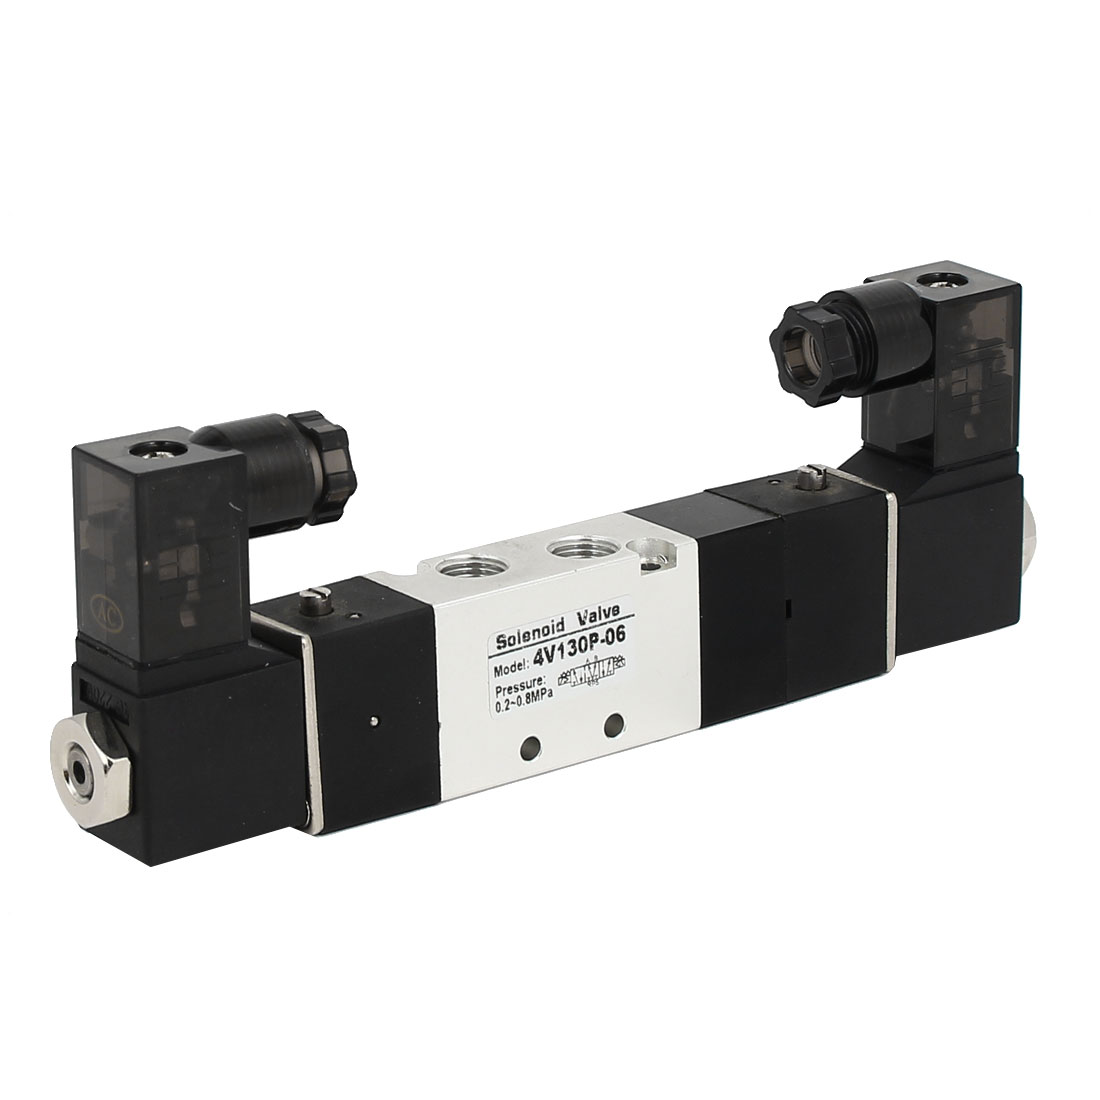 AC 220V 3 Position 5 Way Neutral Pneumatic Air Control Solenoid Valve 4V130P-06